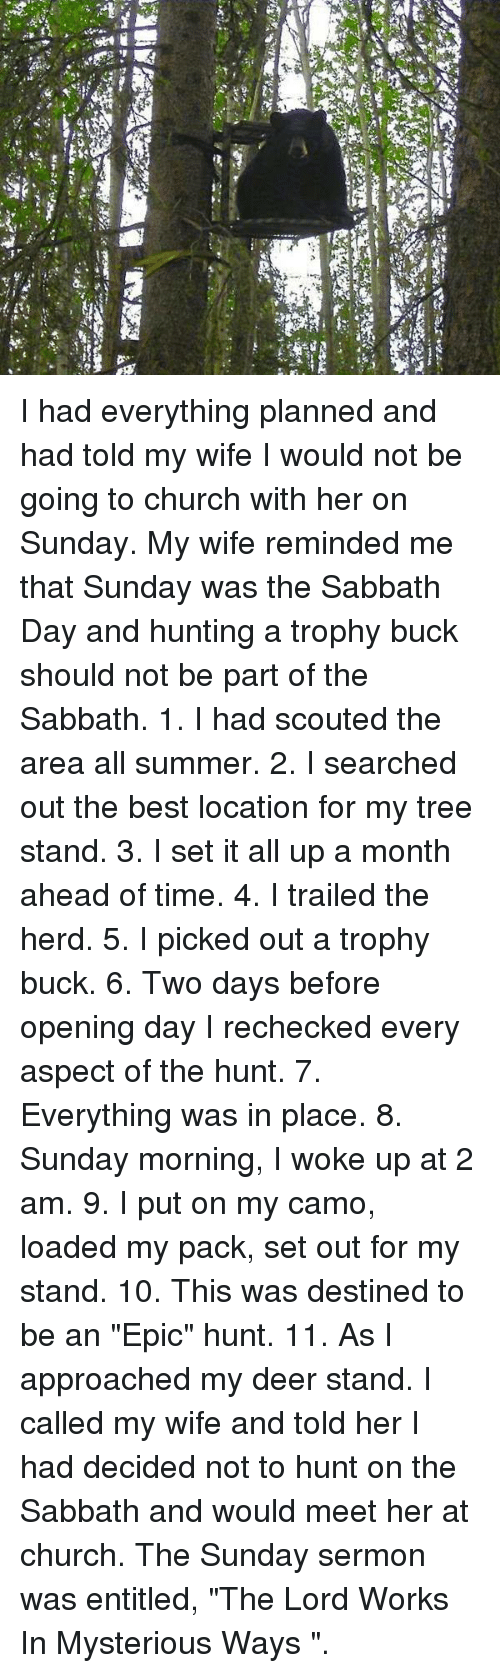 """the sundays: I had everything planned and had told my wife I would not be going to church with her on Sunday. My wife reminded me that Sunday was the Sabbath Day and hunting a trophy buck should not be part of the Sabbath.   1. I had scouted the area all summer.   2. I searched out the best location for my tree stand.   3. I set it all up a month ahead of time.   4. I trailed the herd.   5. I picked out a trophy buck.   6. Two days before opening day I rechecked every aspect of the hunt.   7. Everything was in place.   8. Sunday morning, I woke up at 2 am.   9. I put on my camo, loaded my pack, set out for my stand.   10. This was destined to be an """"Epic"""" hunt.   11. As I approached my deer stand.    I called my wife and told her I had decided not to hunt on the Sabbath and would meet her at church. The Sunday sermon was entitled, """"The Lord Works In Mysterious Ways """"."""